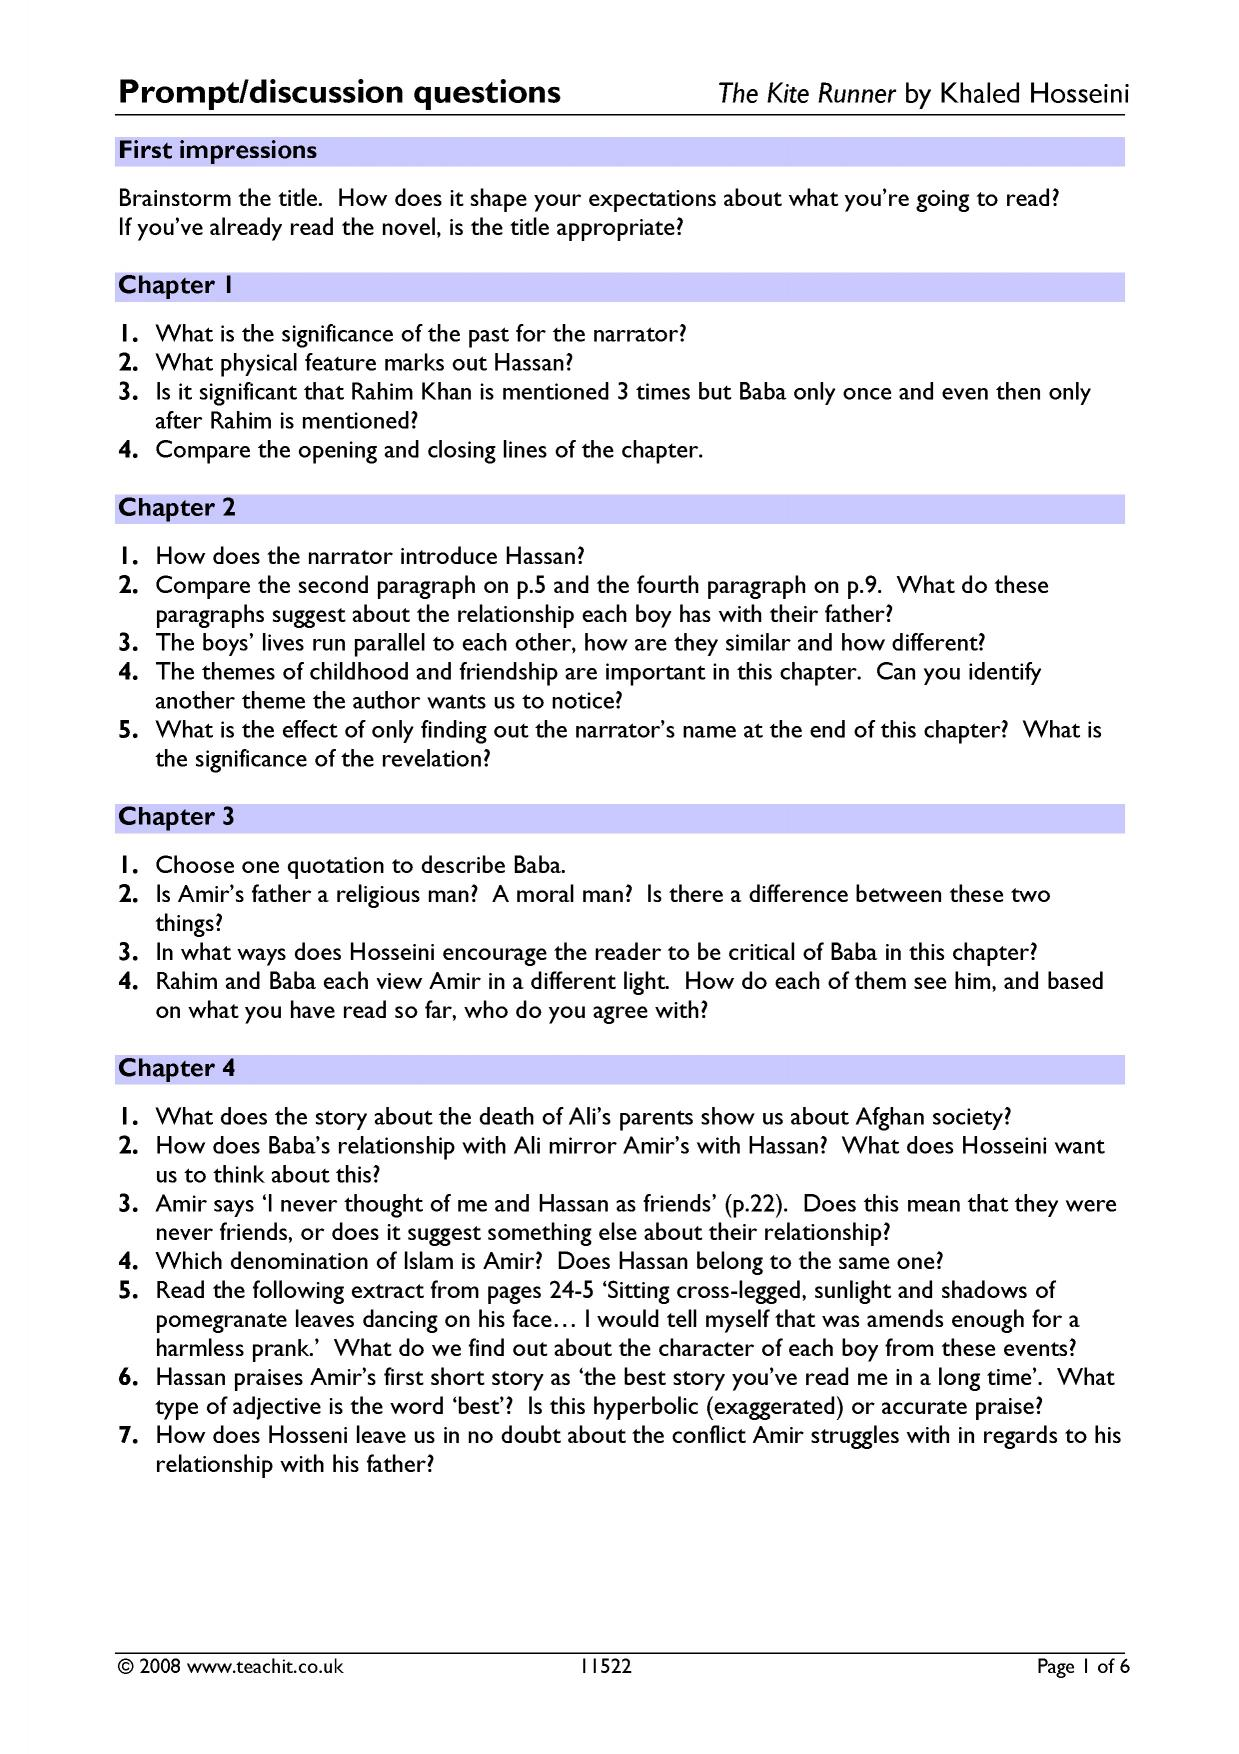 essay on the kite runner the kite runner by khaled hosseini prose  the kite runner by khaled hosseini prose key stage 5 english 0 preview